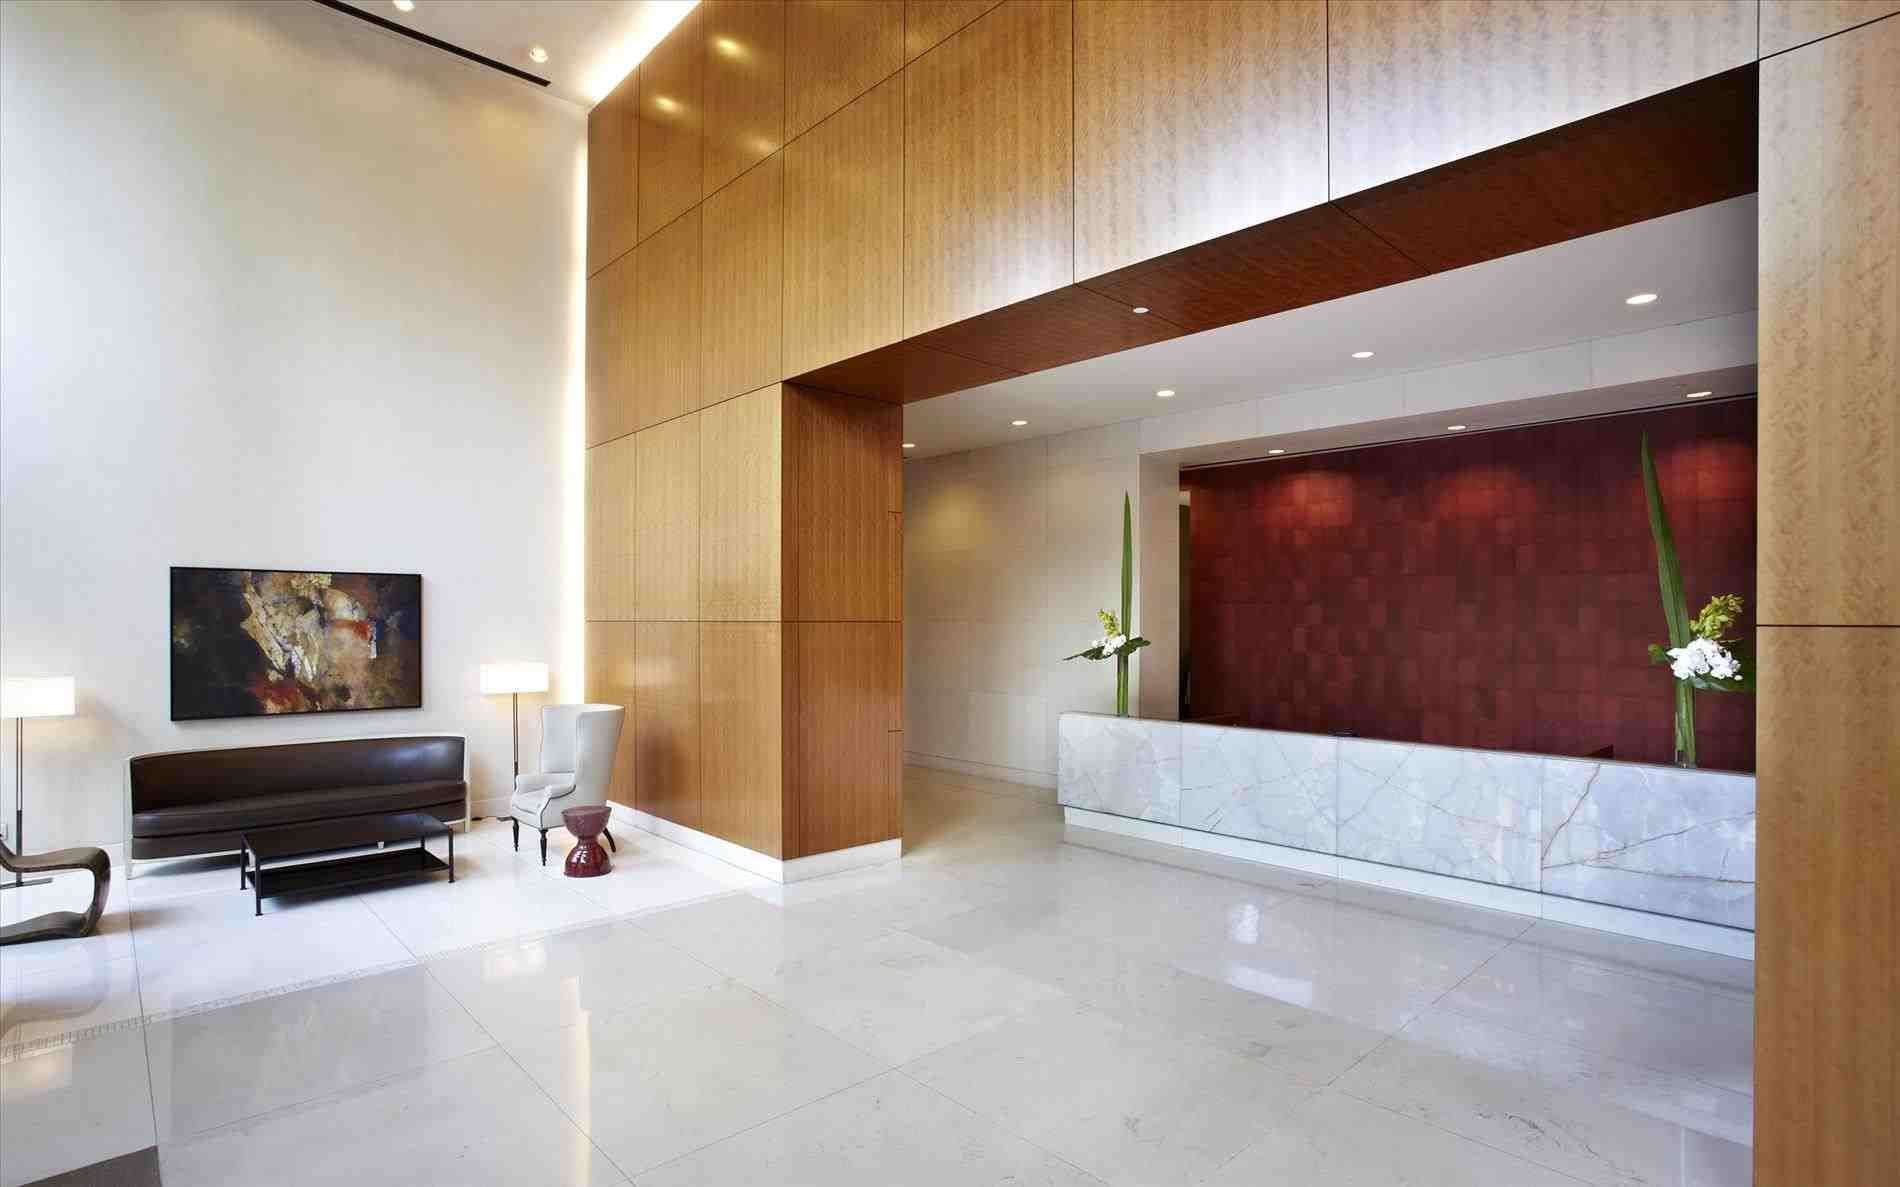 Apartment nyc the gartner penthouse for sale in new york city